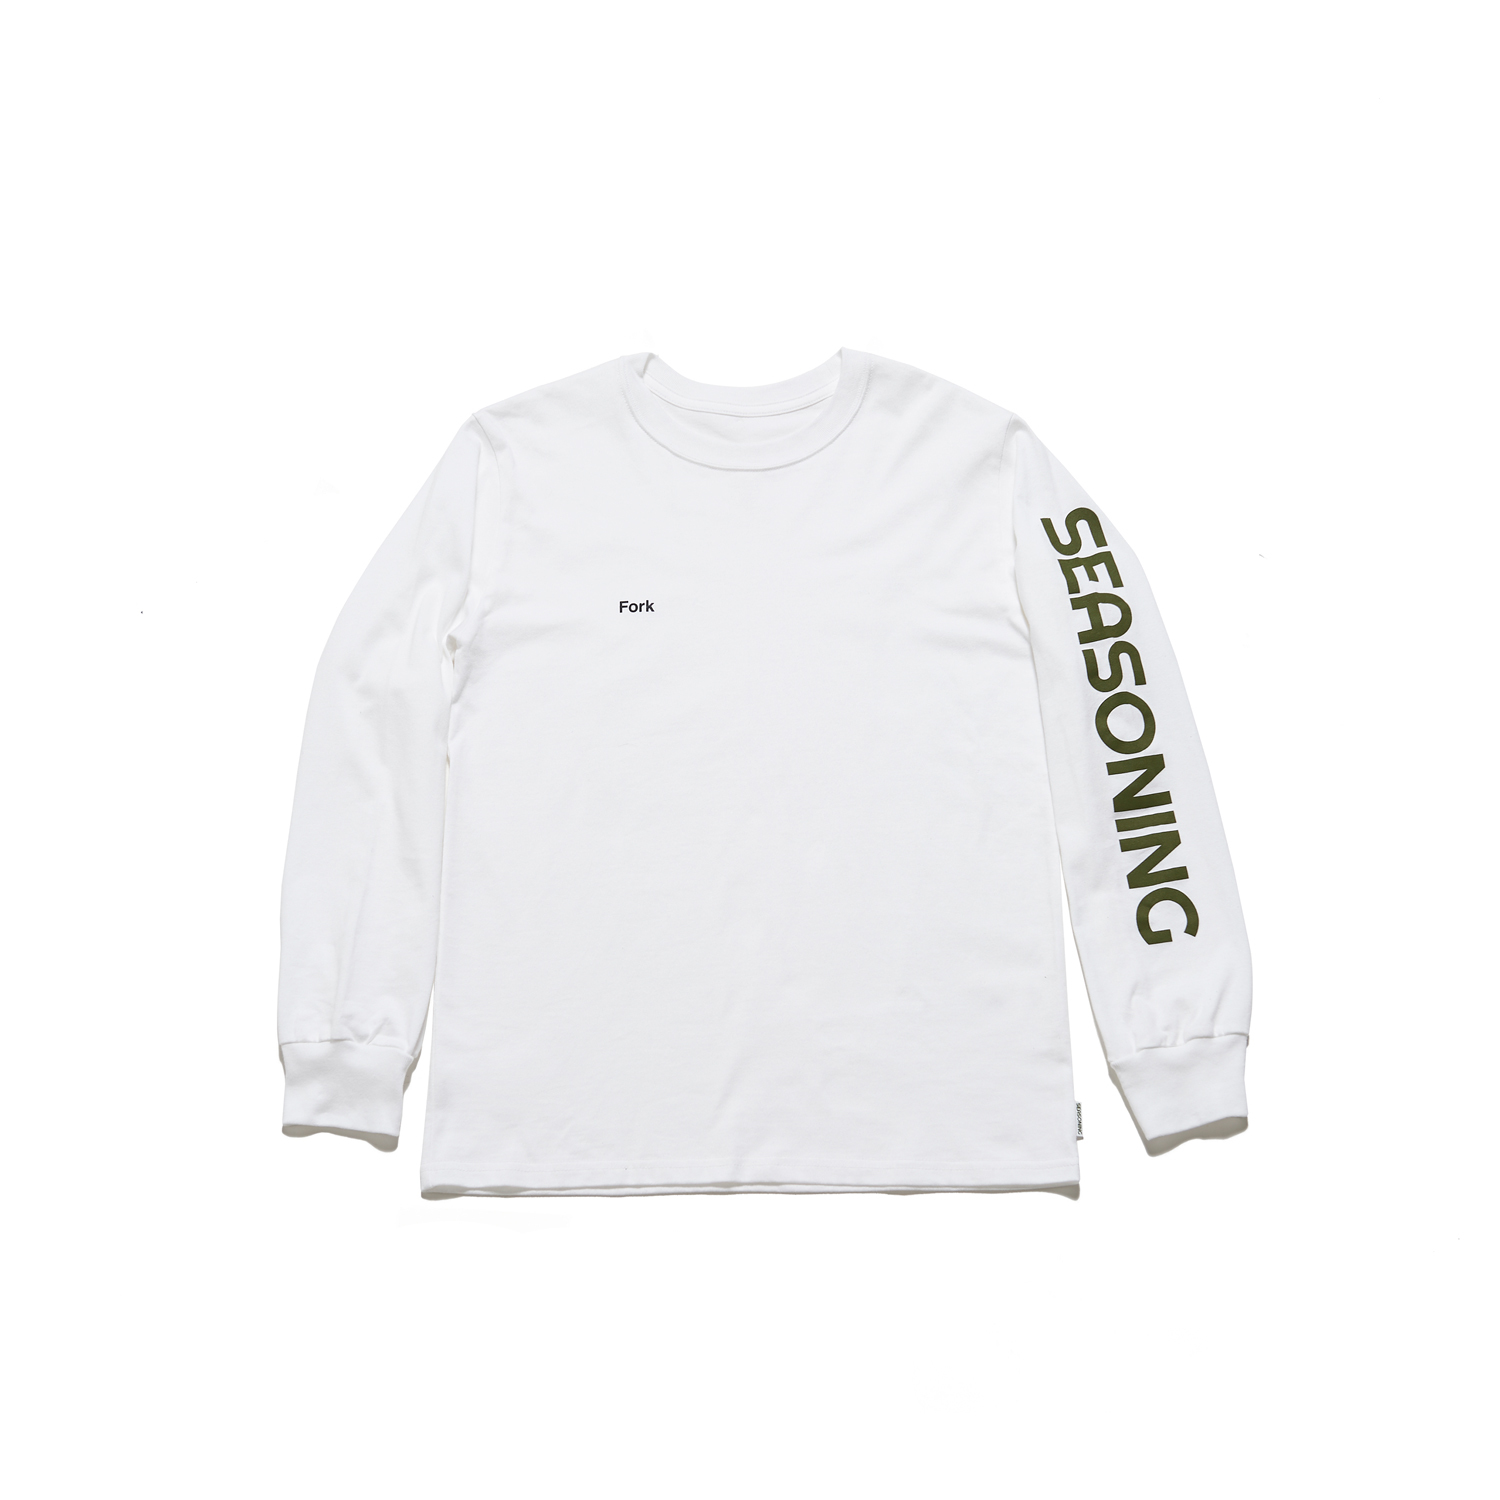 "SEASONING L/S TEE ""Fork"" -  WHITE"